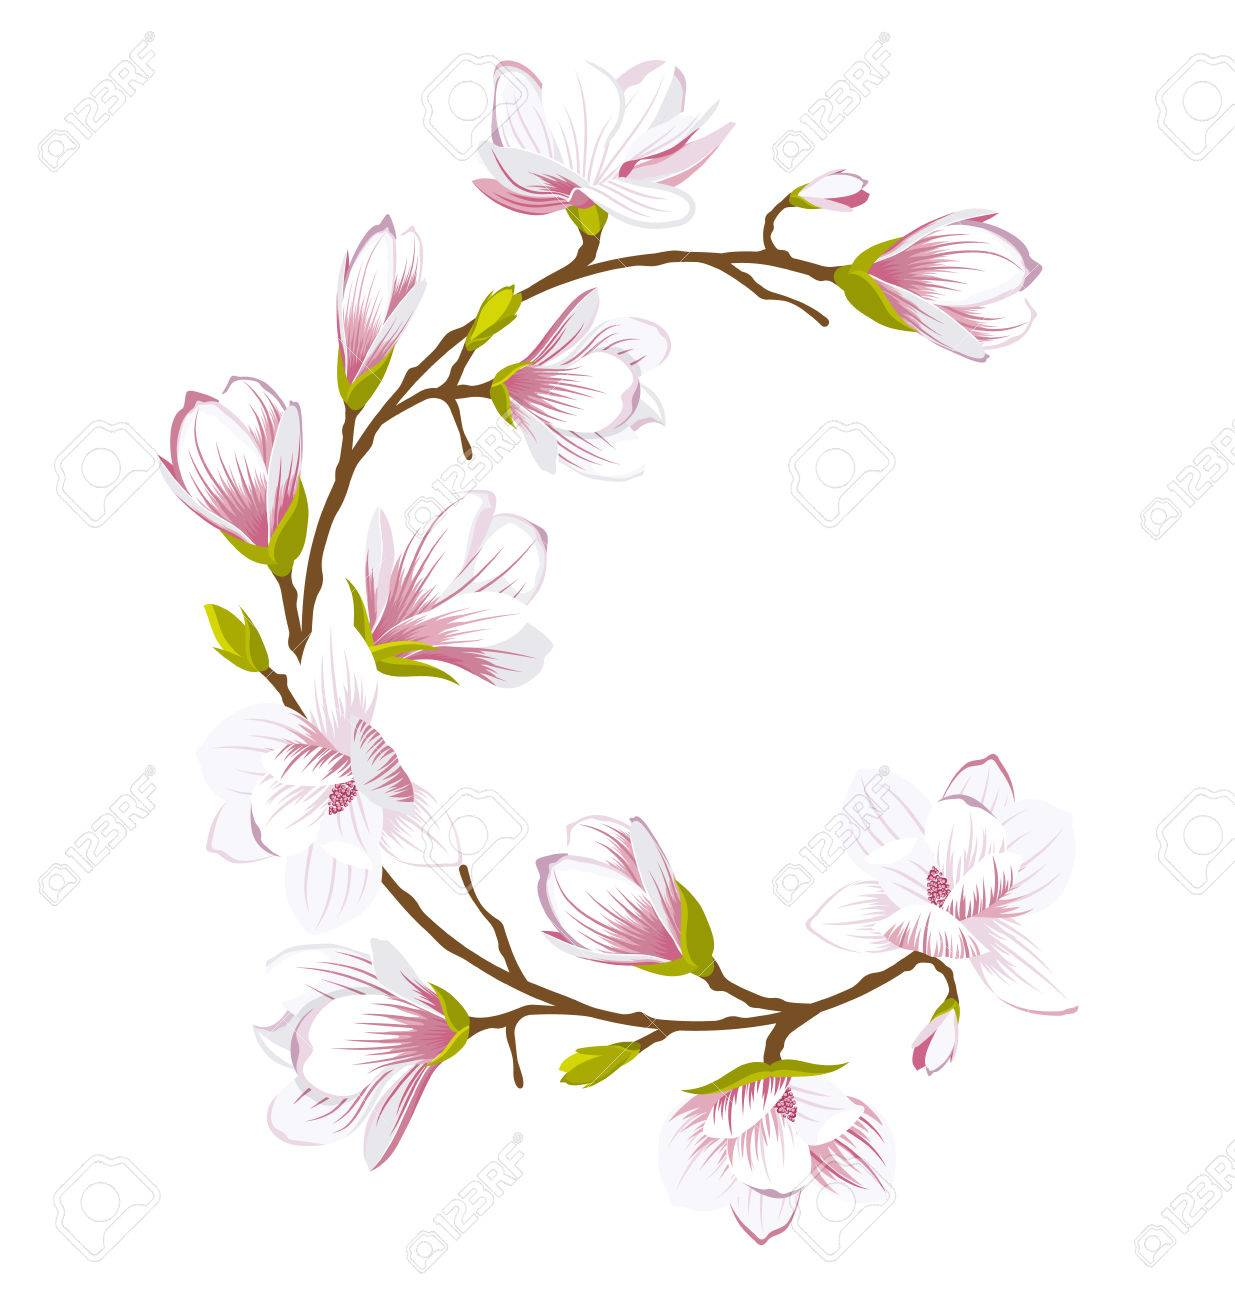 Round Frame Made of Beautiful Magnolia Flowers - 77015600